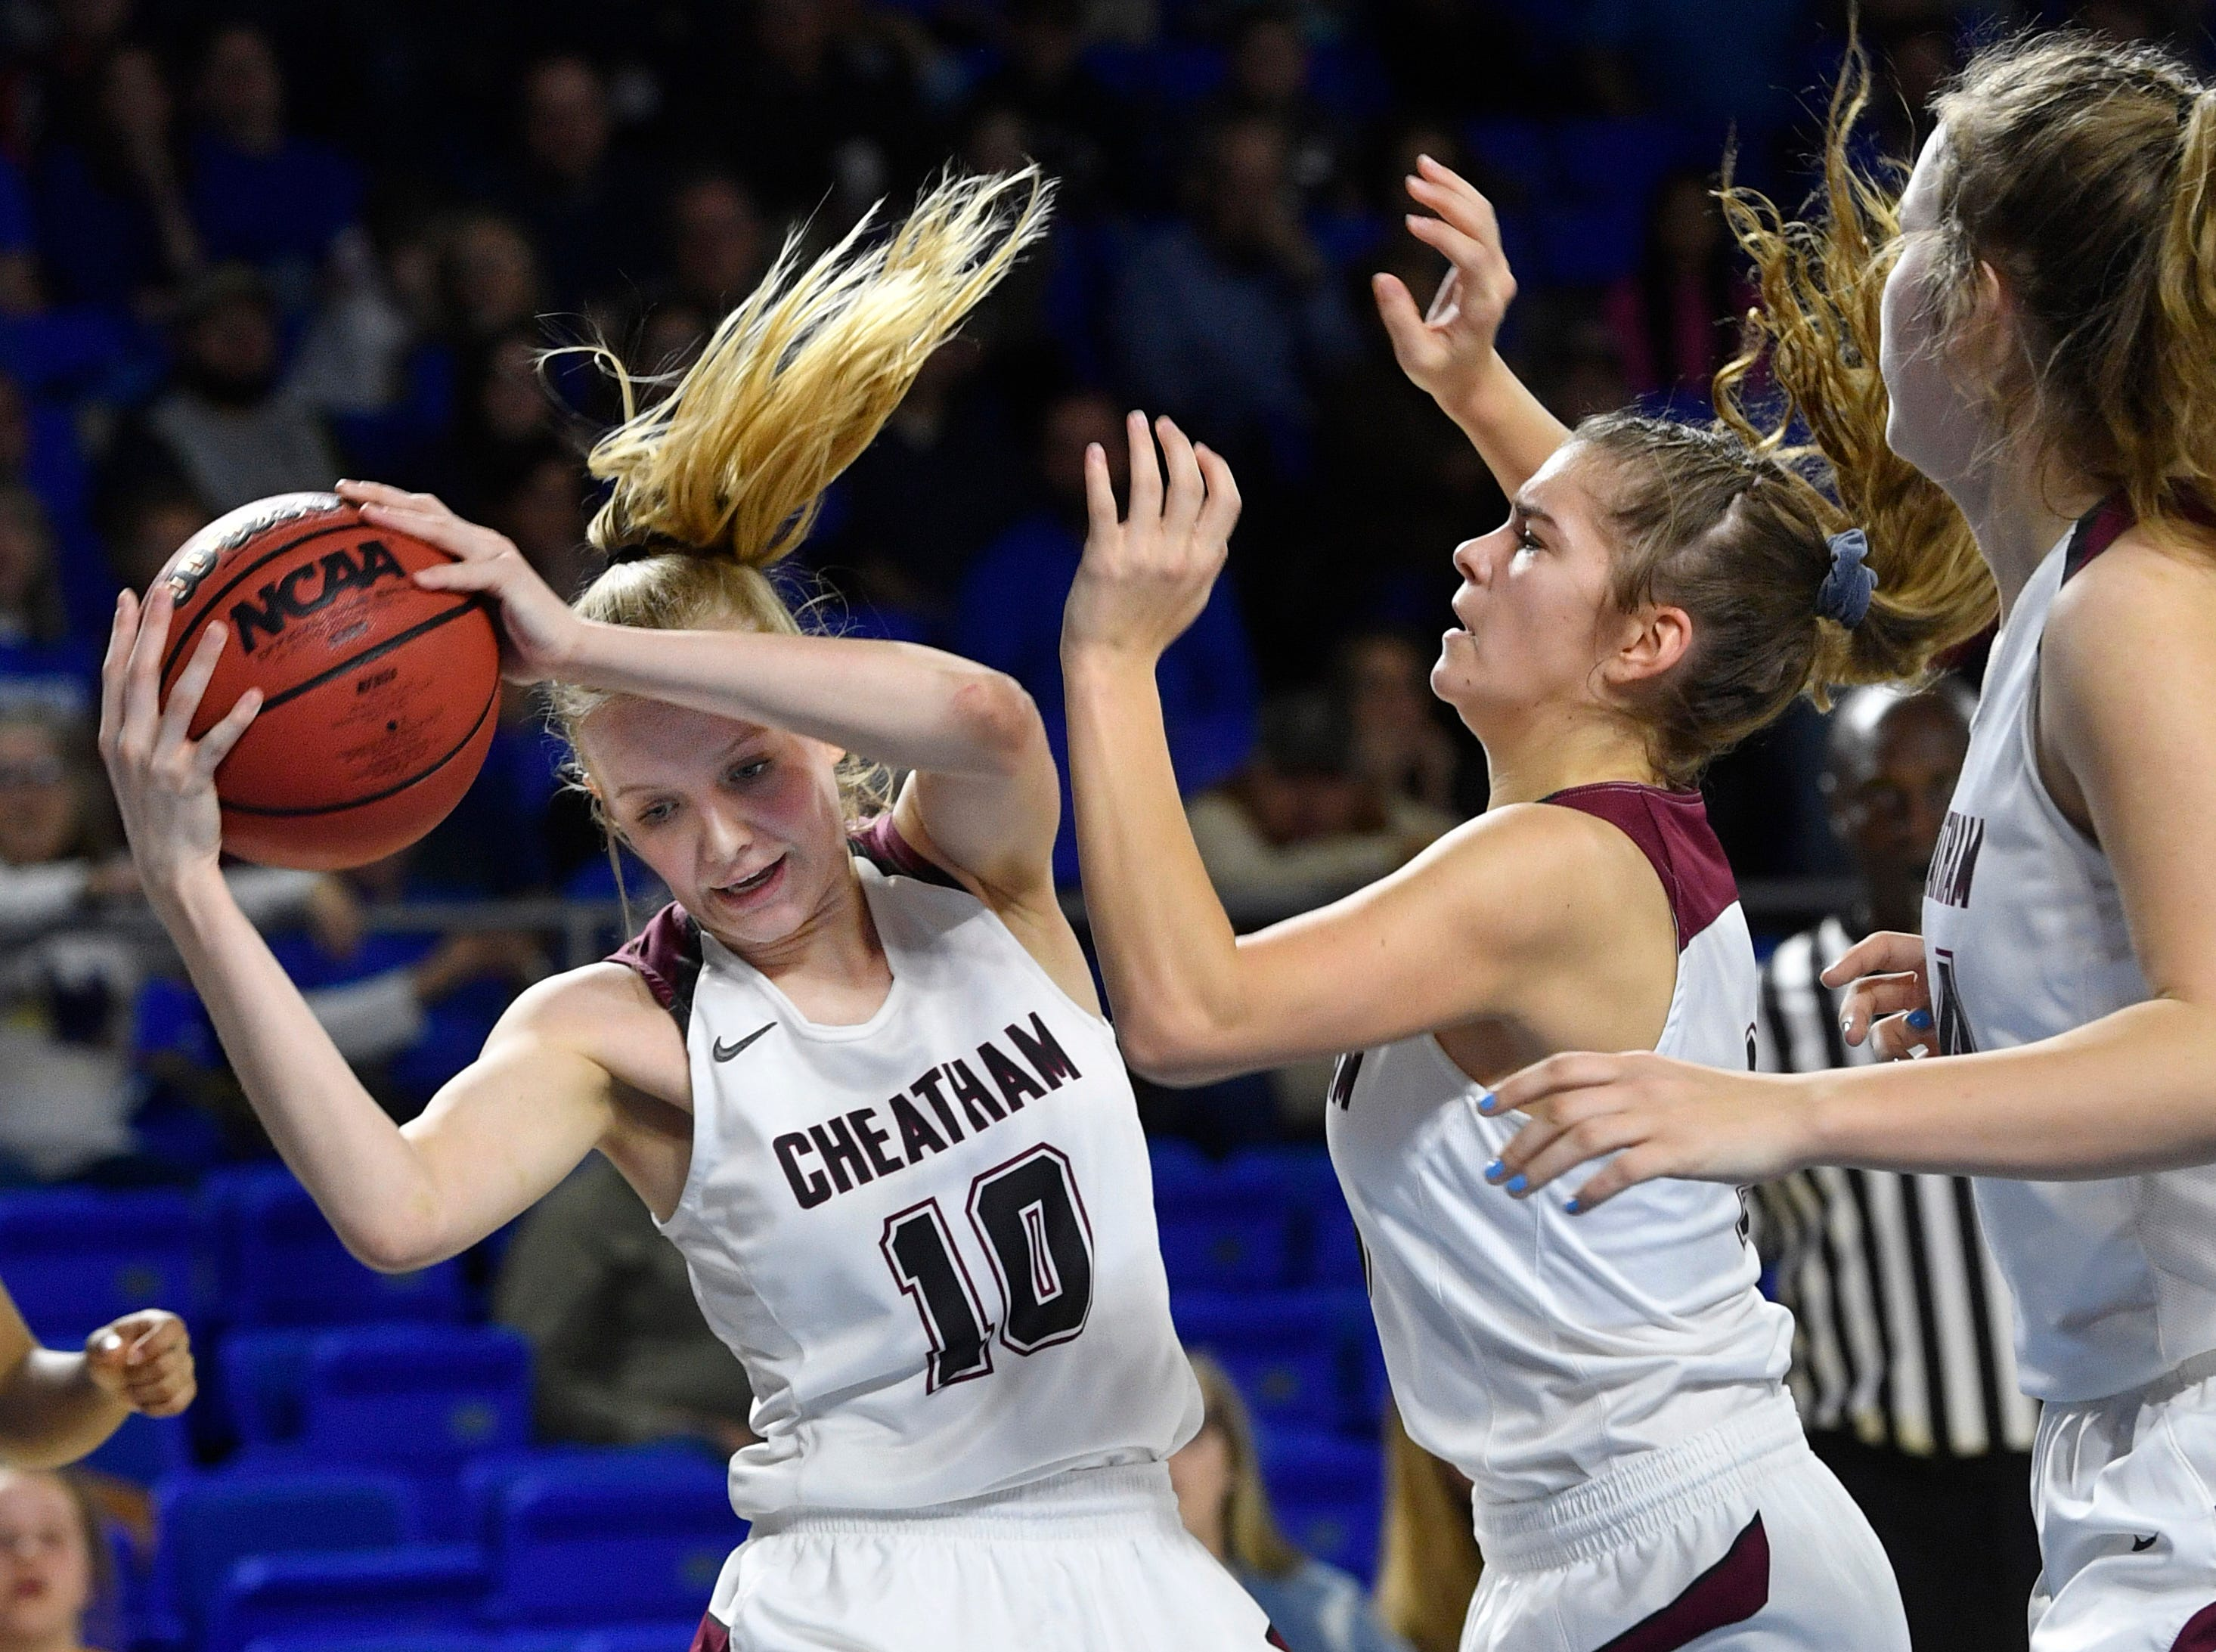 Cheatham County's Abbi Douglas (10) comes down with the rebound as Cheatham County plays Westview in the Class AA Championship Saturday, March 9, 2019, in Murfreesboro, Tenn.